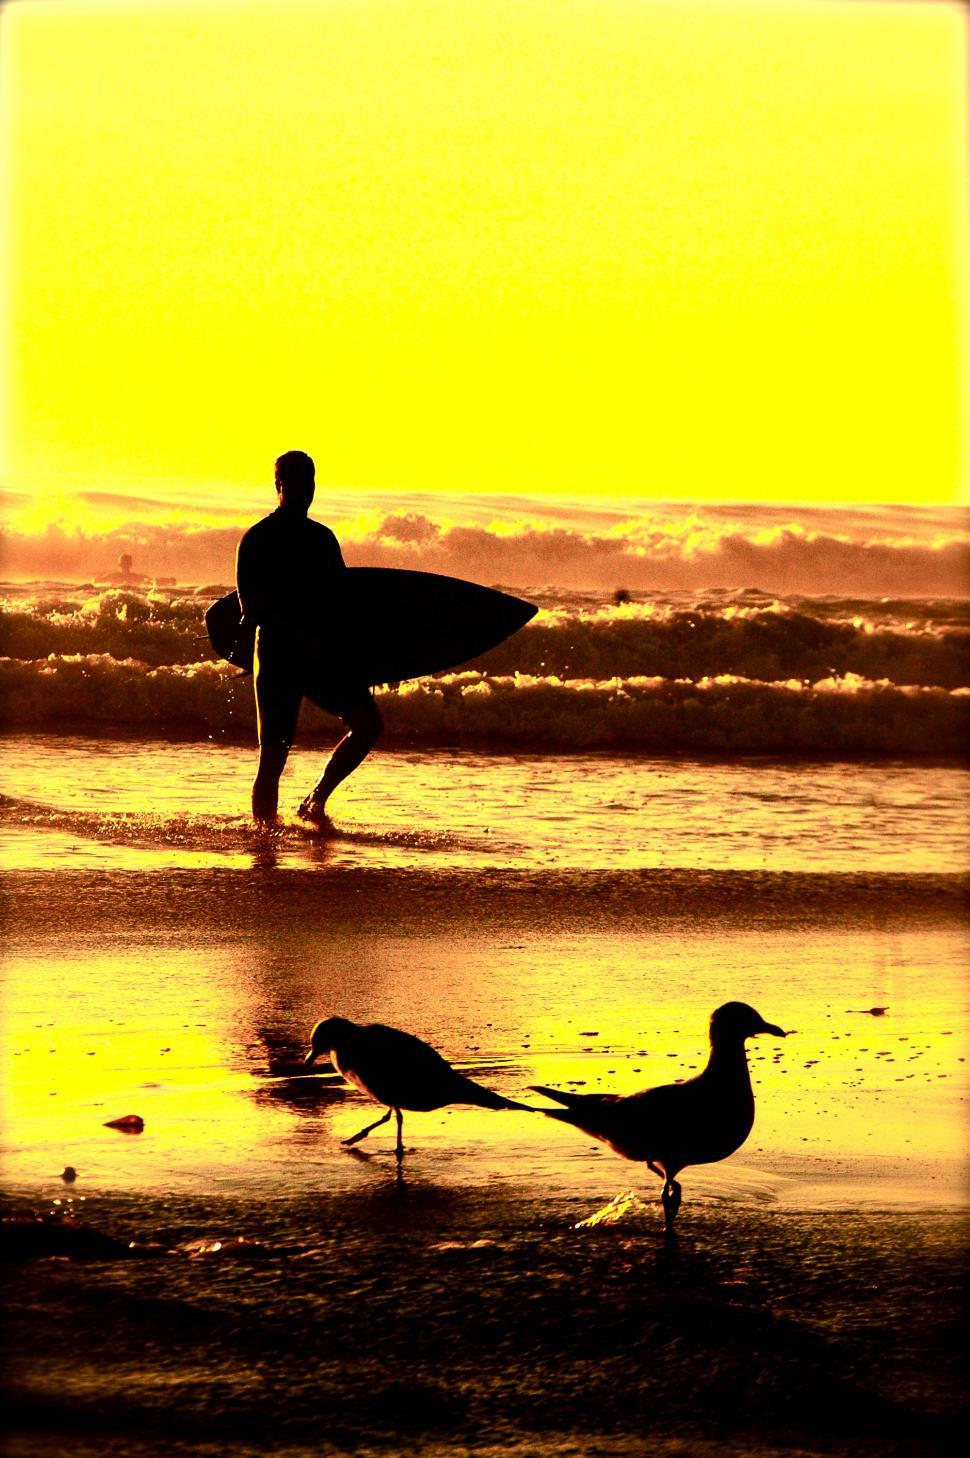 Download Free Stock Photo of Surfer emerges from a sunset Surf. Birds by the Ocean Beach